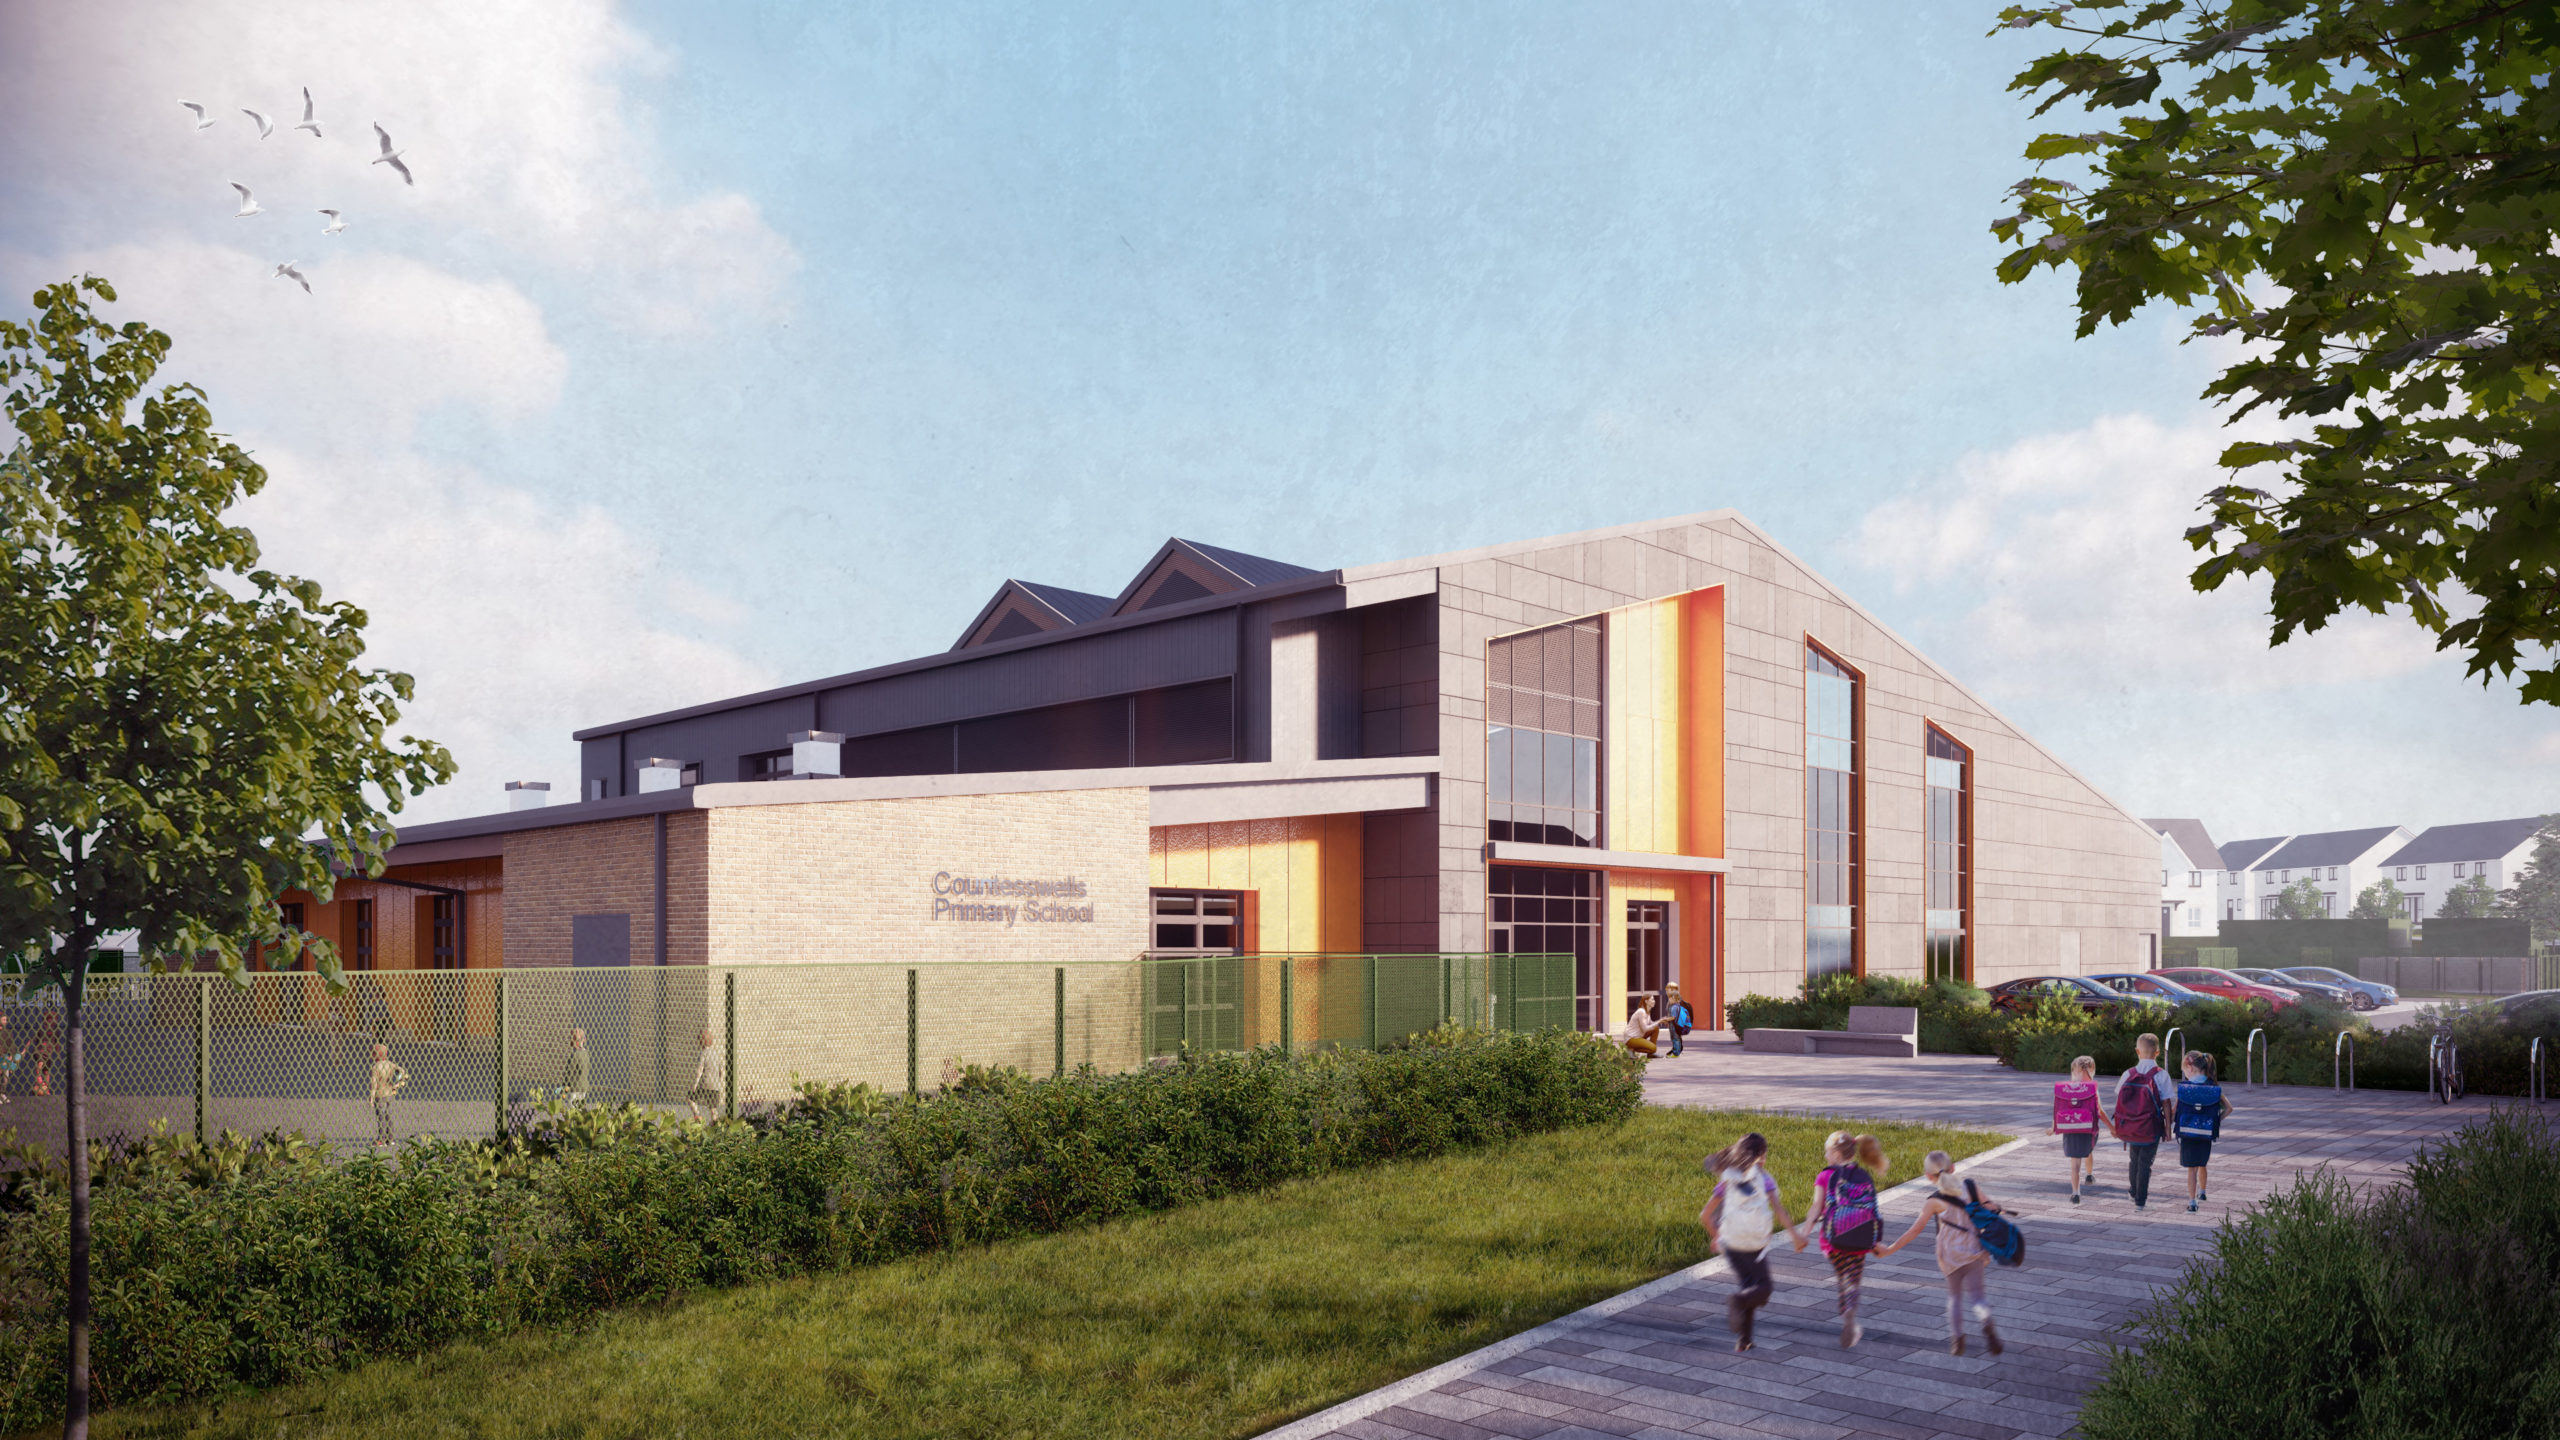 New images of the primary school at Countesswells